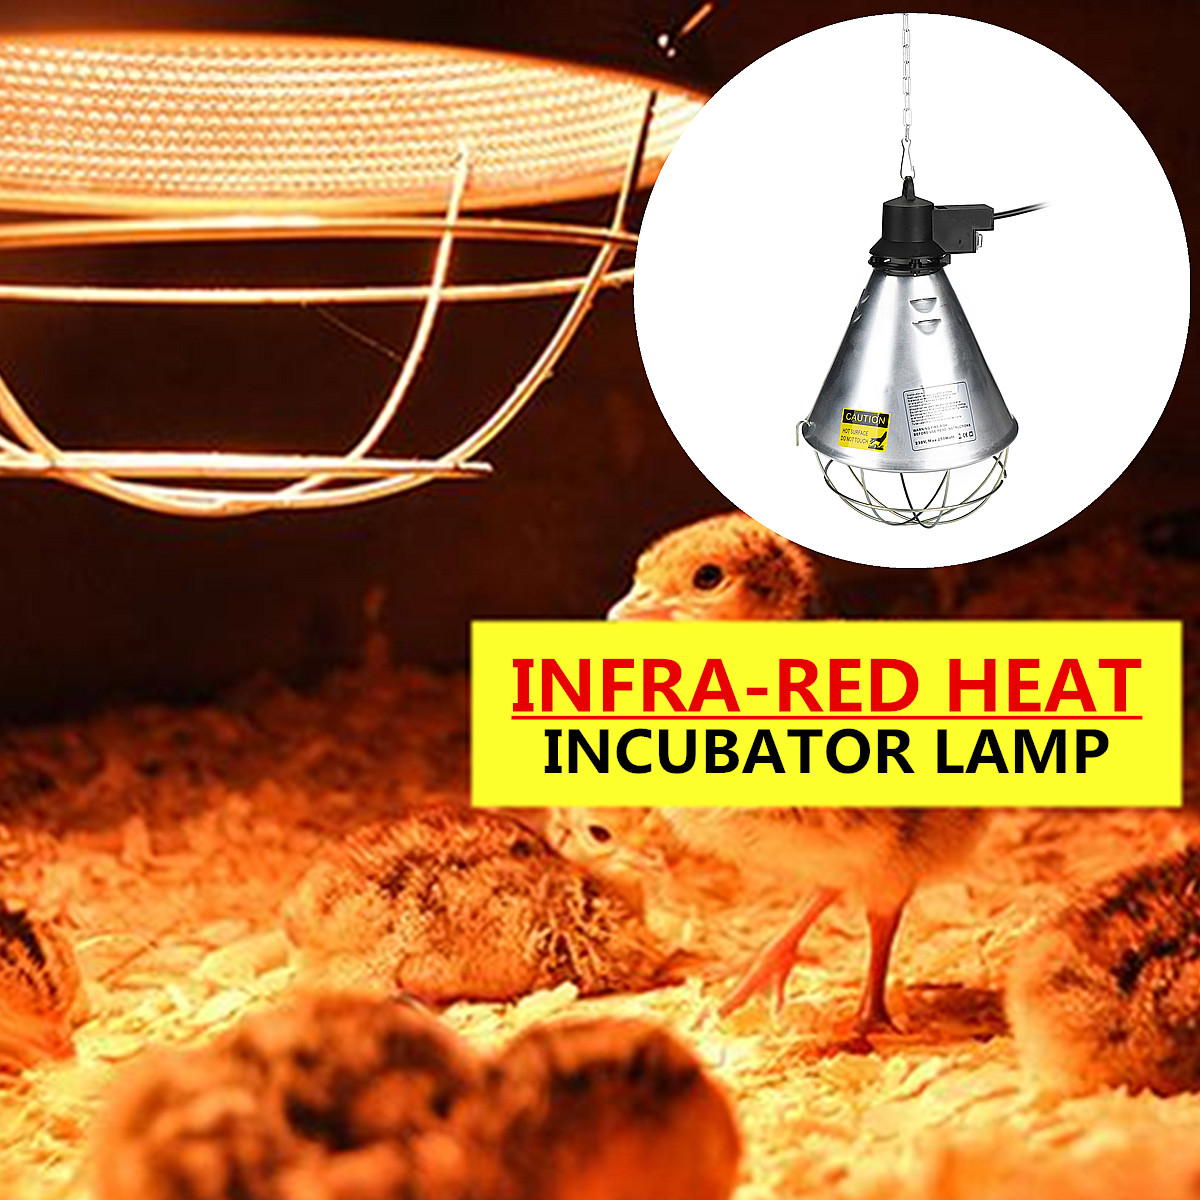 AC240V 250W E27 Poultry Heat Incubator Lamp With Transparent / Red Light Bulb for Chicks Puppies